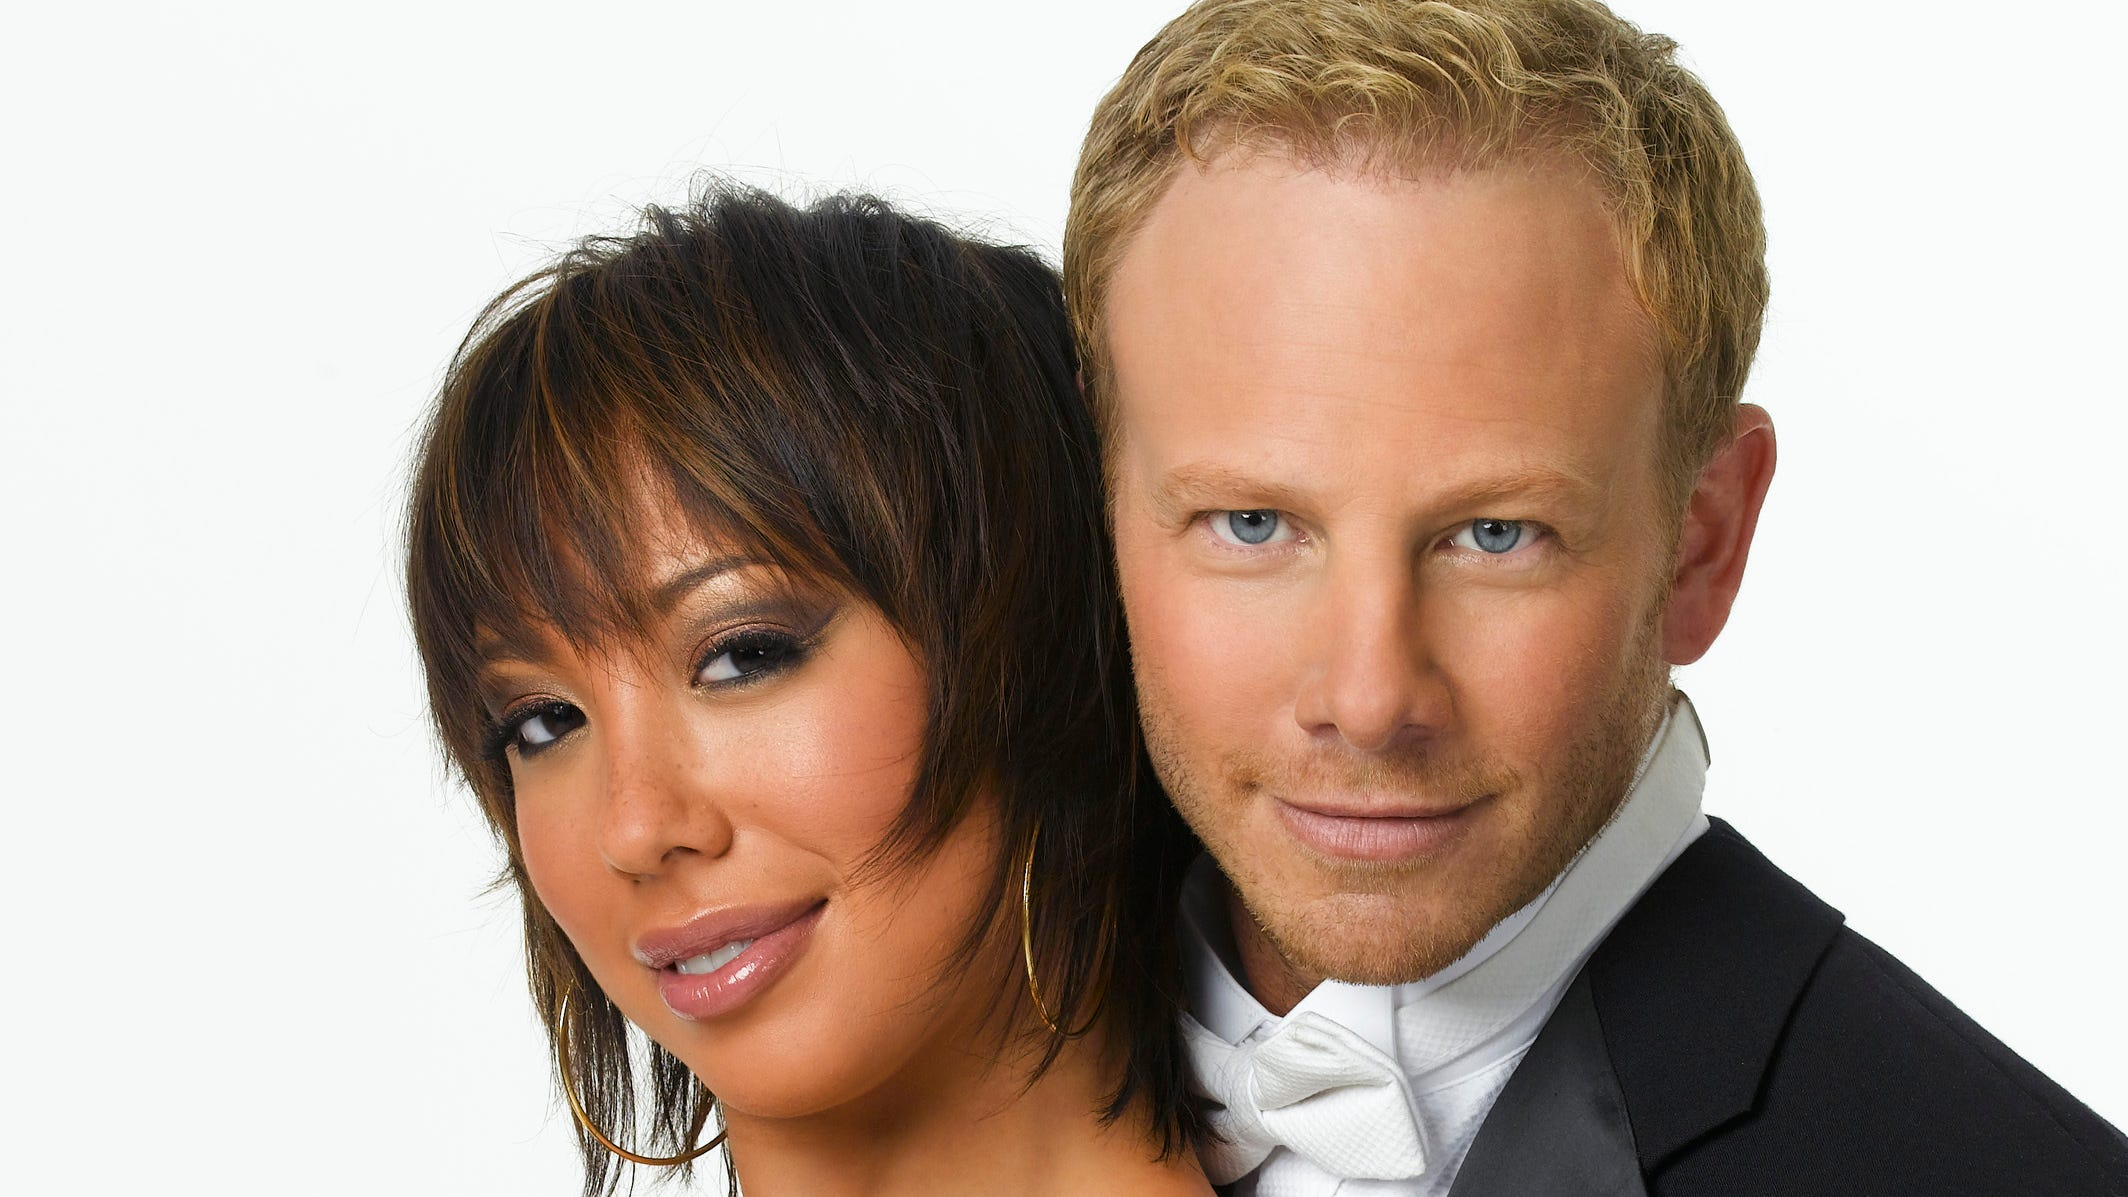 Cheryl Burke wants to 'make amends' with former 'Dancing with the Stars' partner Ian Ziering